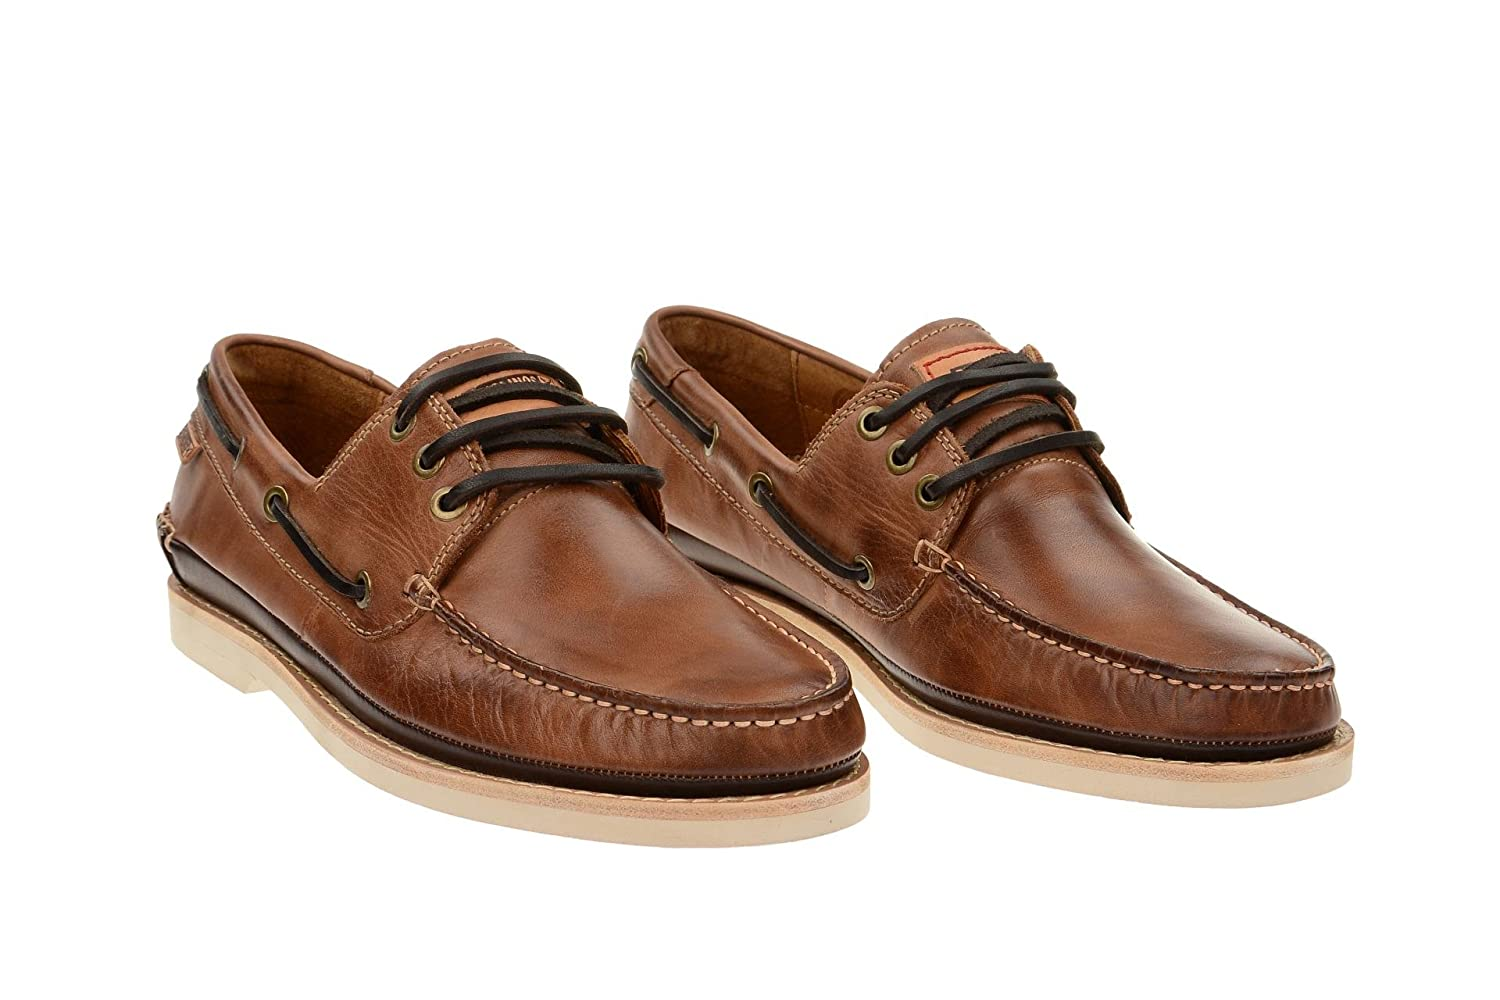 Basses Chaussures Chaussures Confortable Basses Monsieur Monsieur Confortable Basses QrxoedCBW